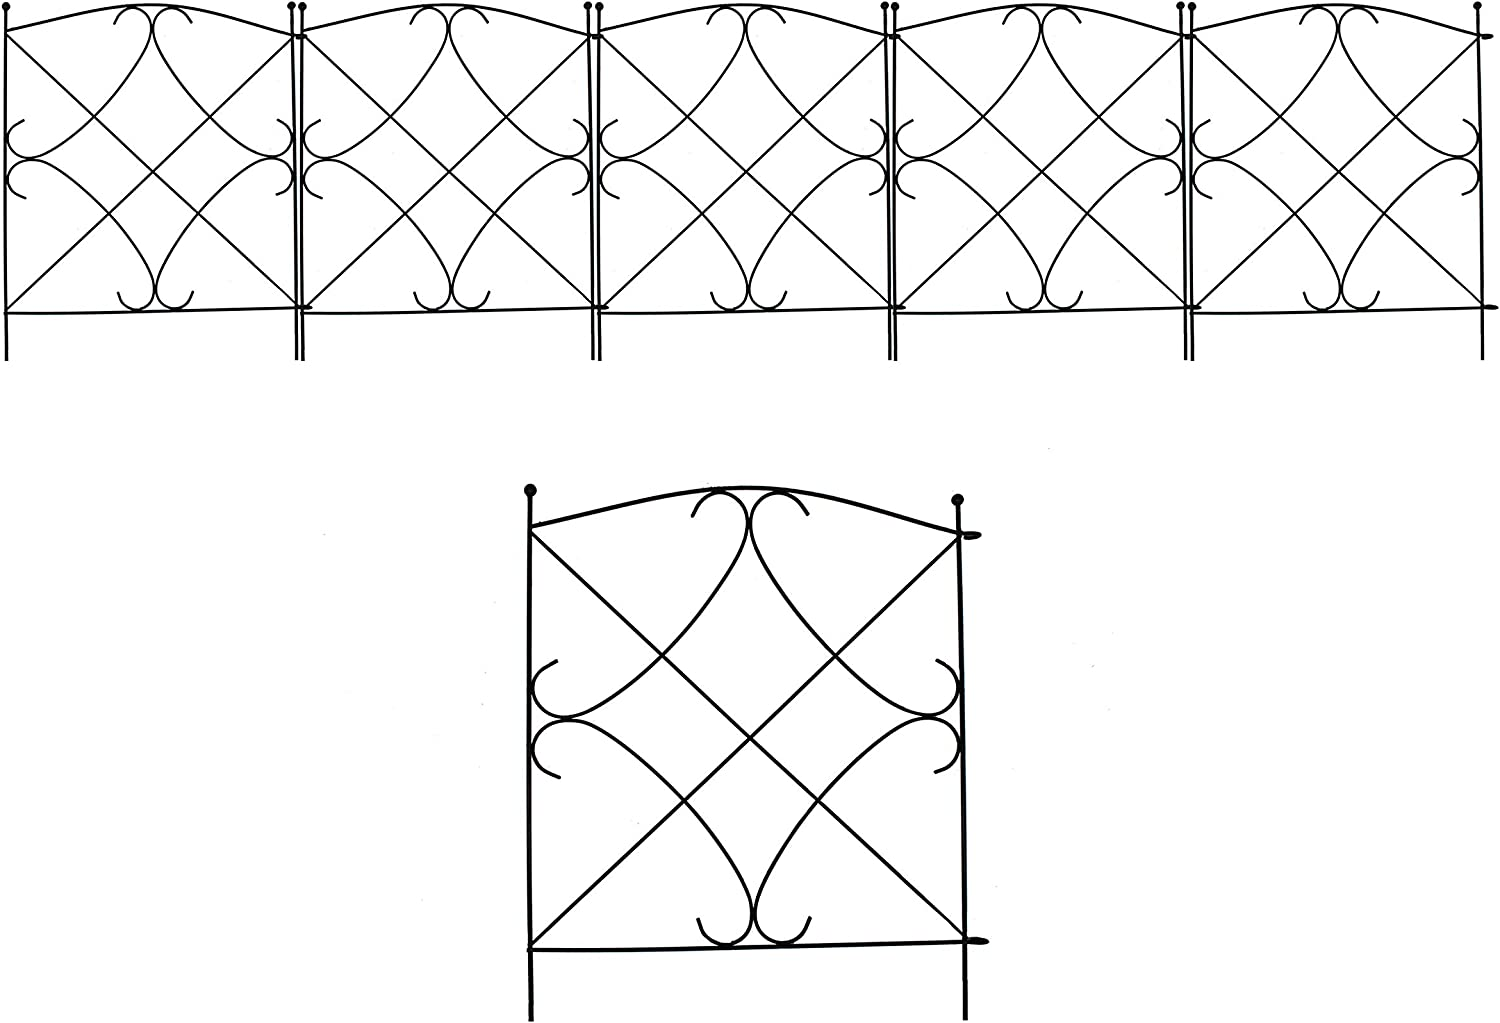 VOTENVO Decorative Garden Fence 18in x 6ft Outdoor Coated Metal Decorative Garden Square Fencing Panels Animal Barrier Outdoor Iron Edge Fencing for Landscape Folding Flower Bed Fence